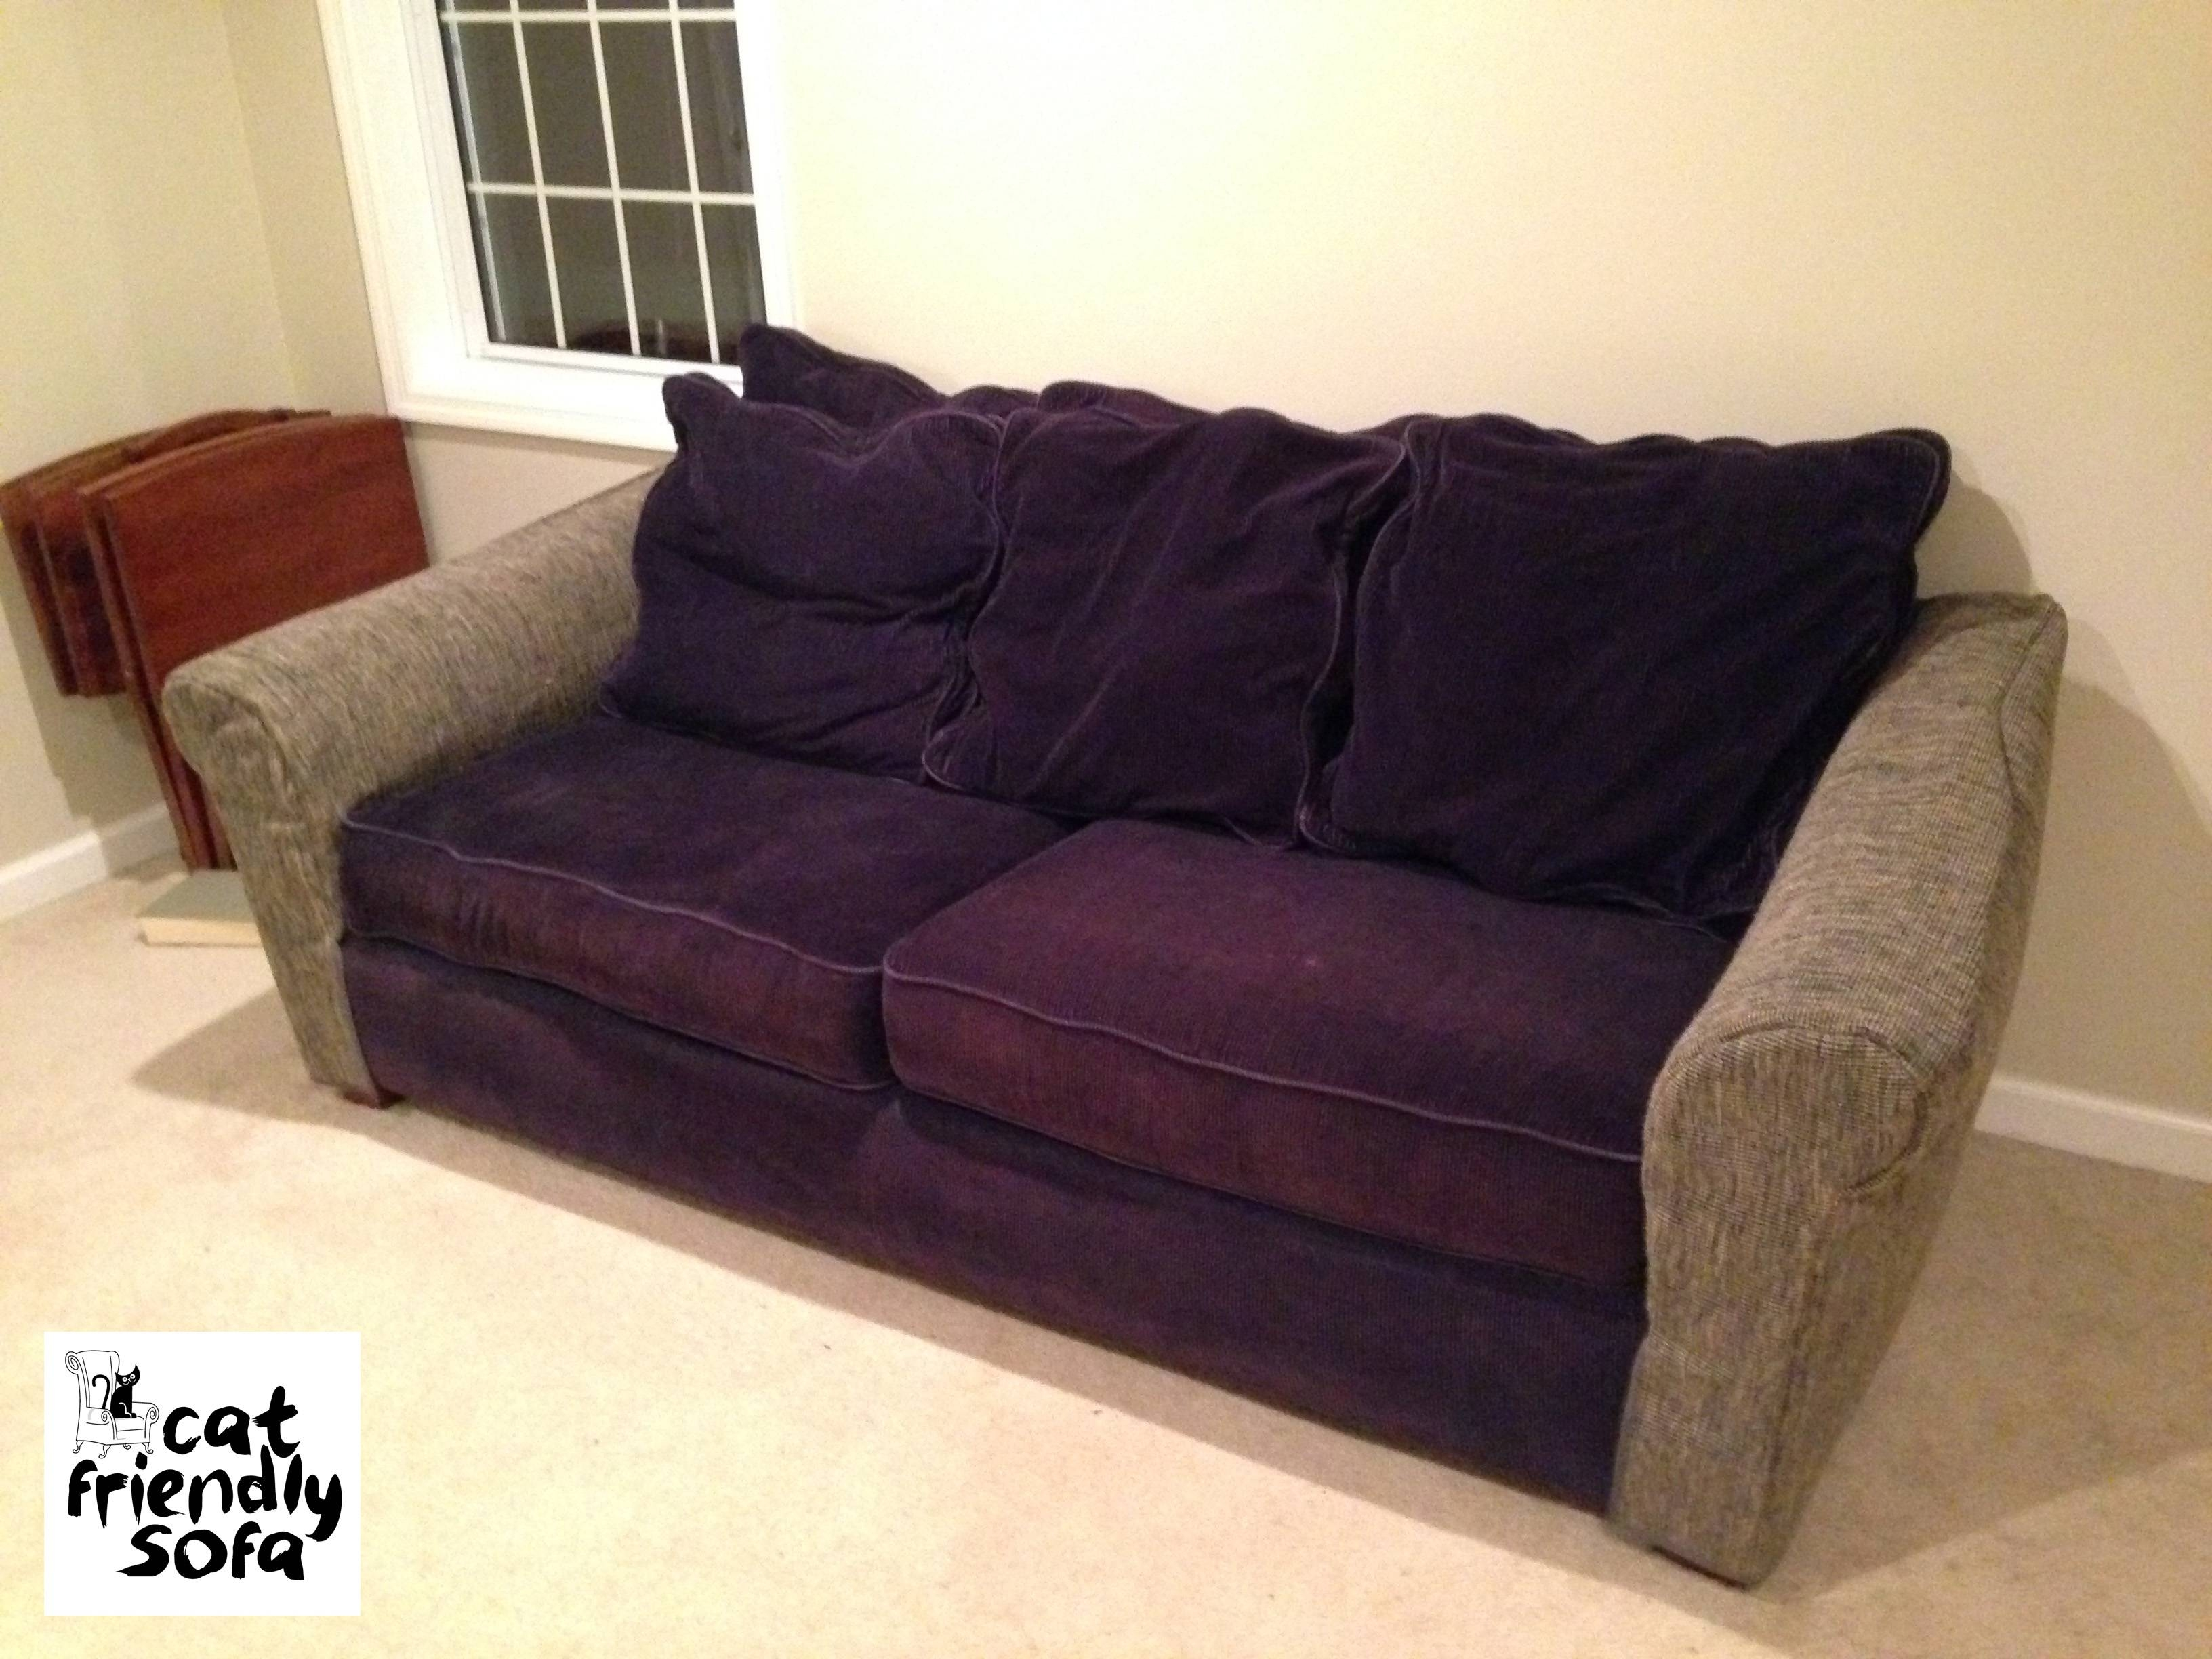 Tailored Slipcovers – Cat Friendly Sofa | Cat Friendly Sofa – Part 2 For Cat Proof Sofas (View 13 of 15)